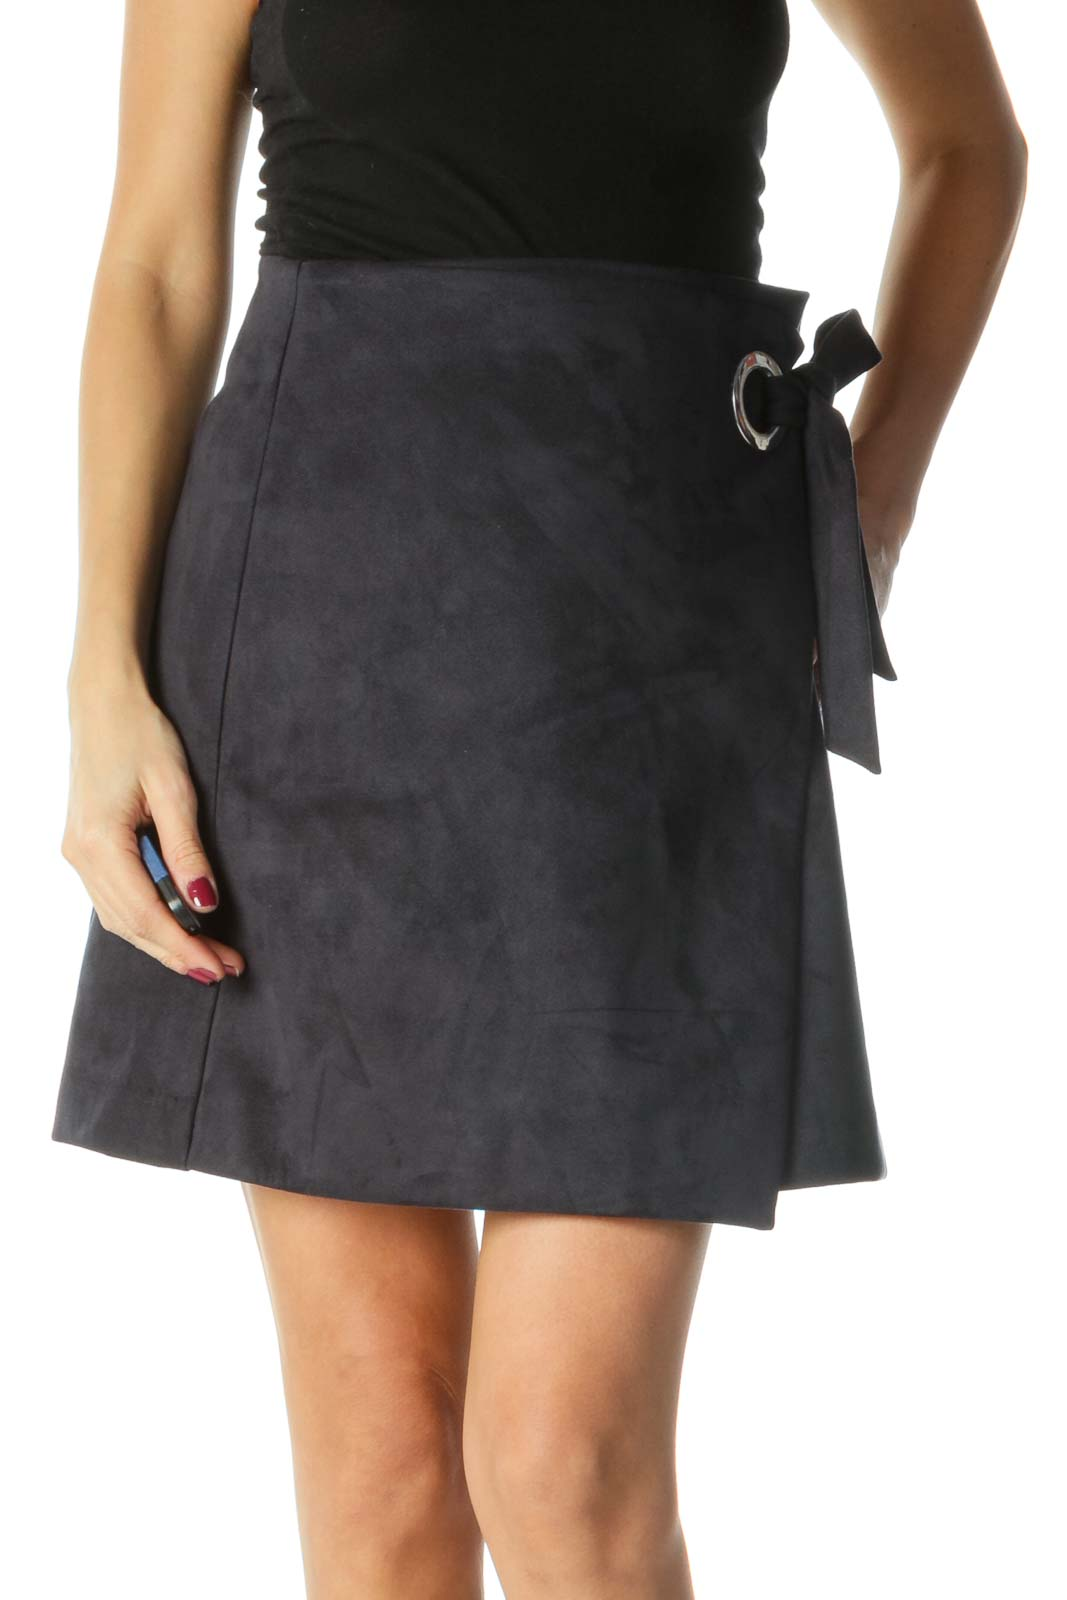 Blue Suede Flared Skirt with Wasit-tie